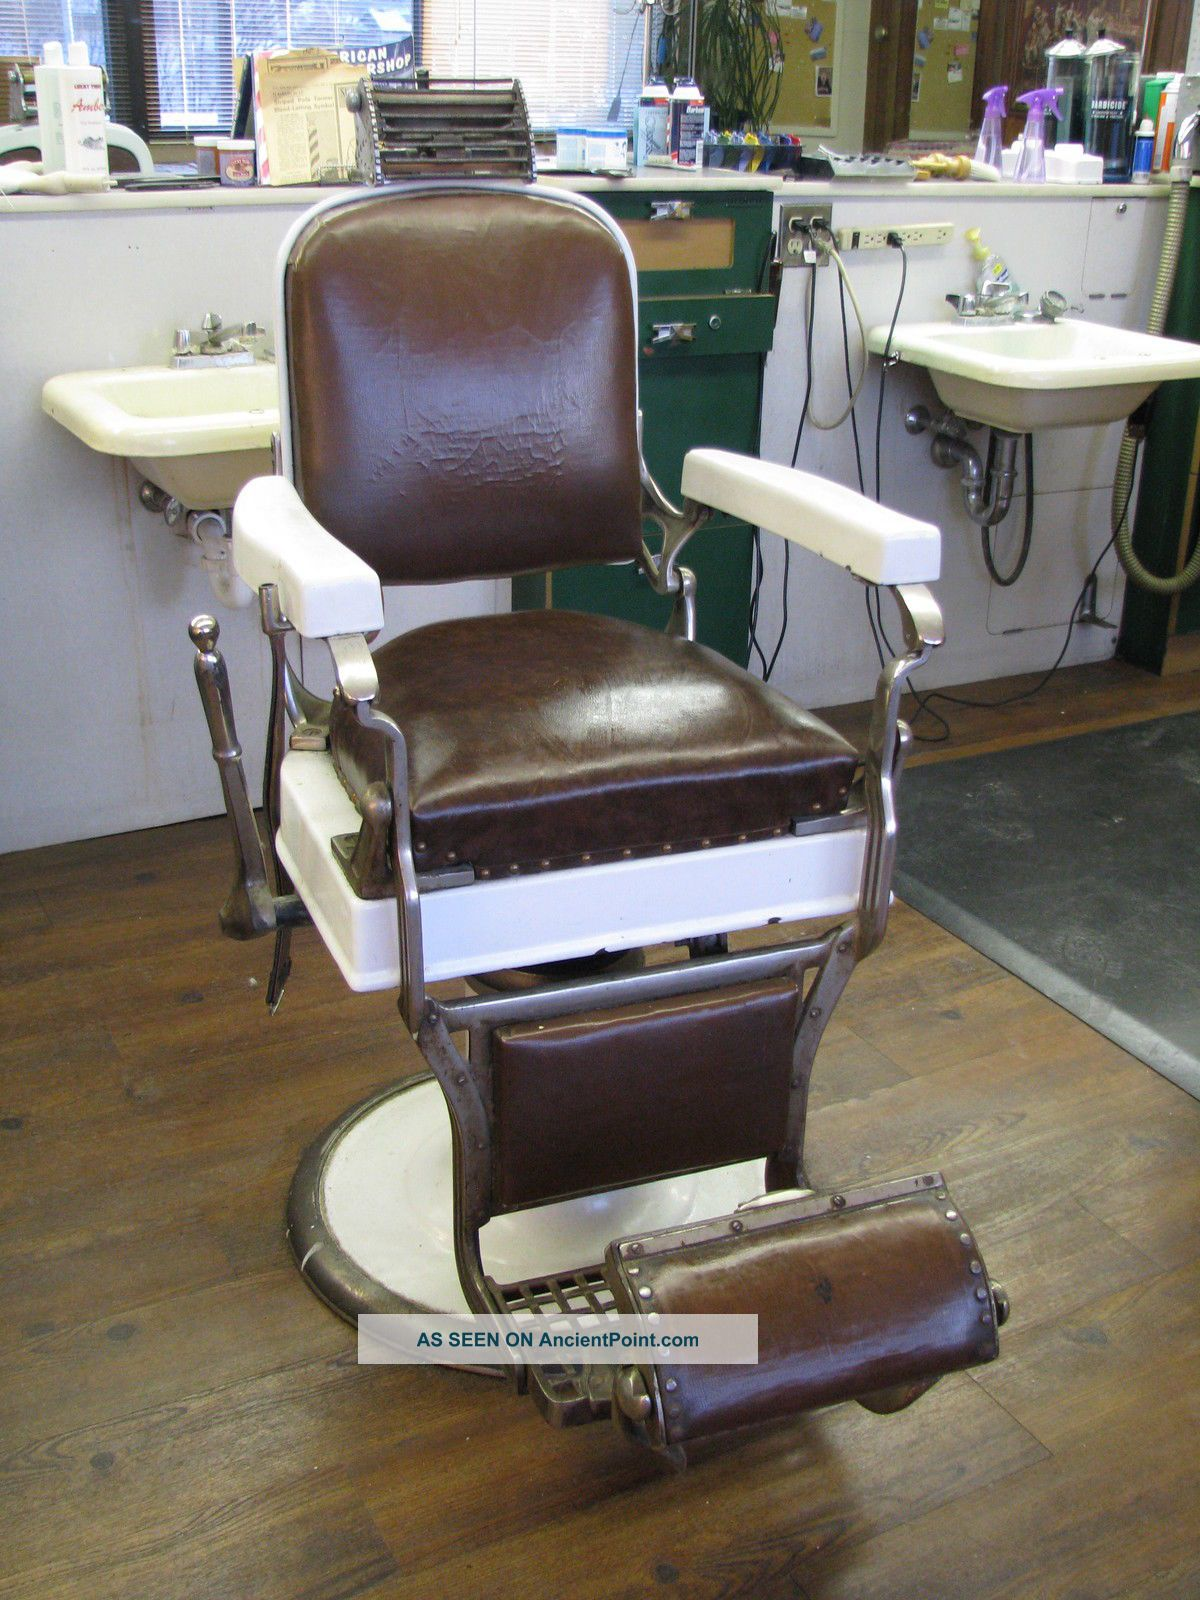 Incredible barber chairs for sale for salon furniture with cheap barber chairs for sale